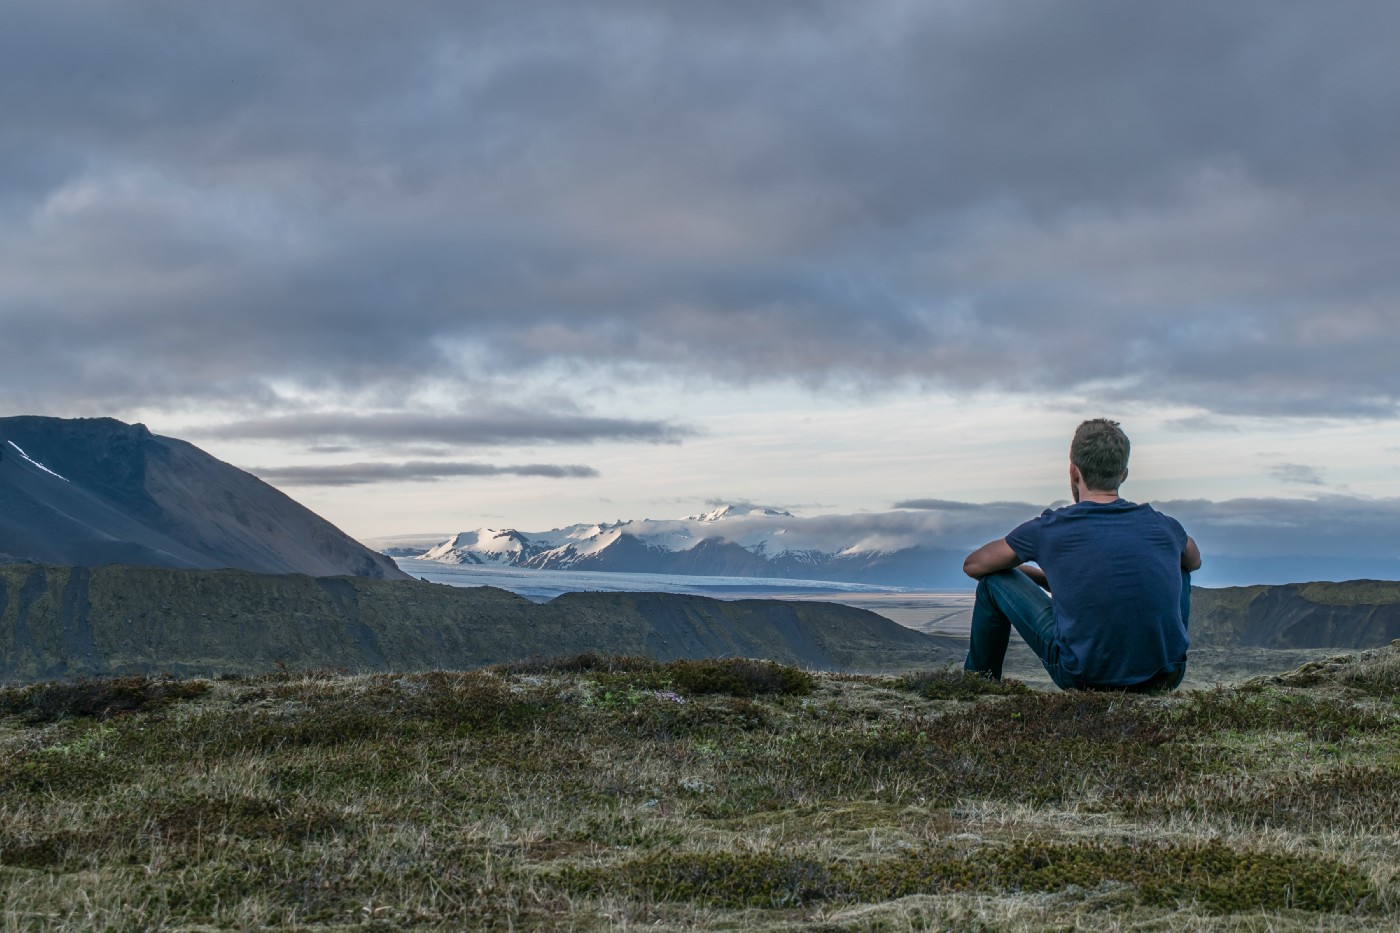 Man thinking in solitude in nature